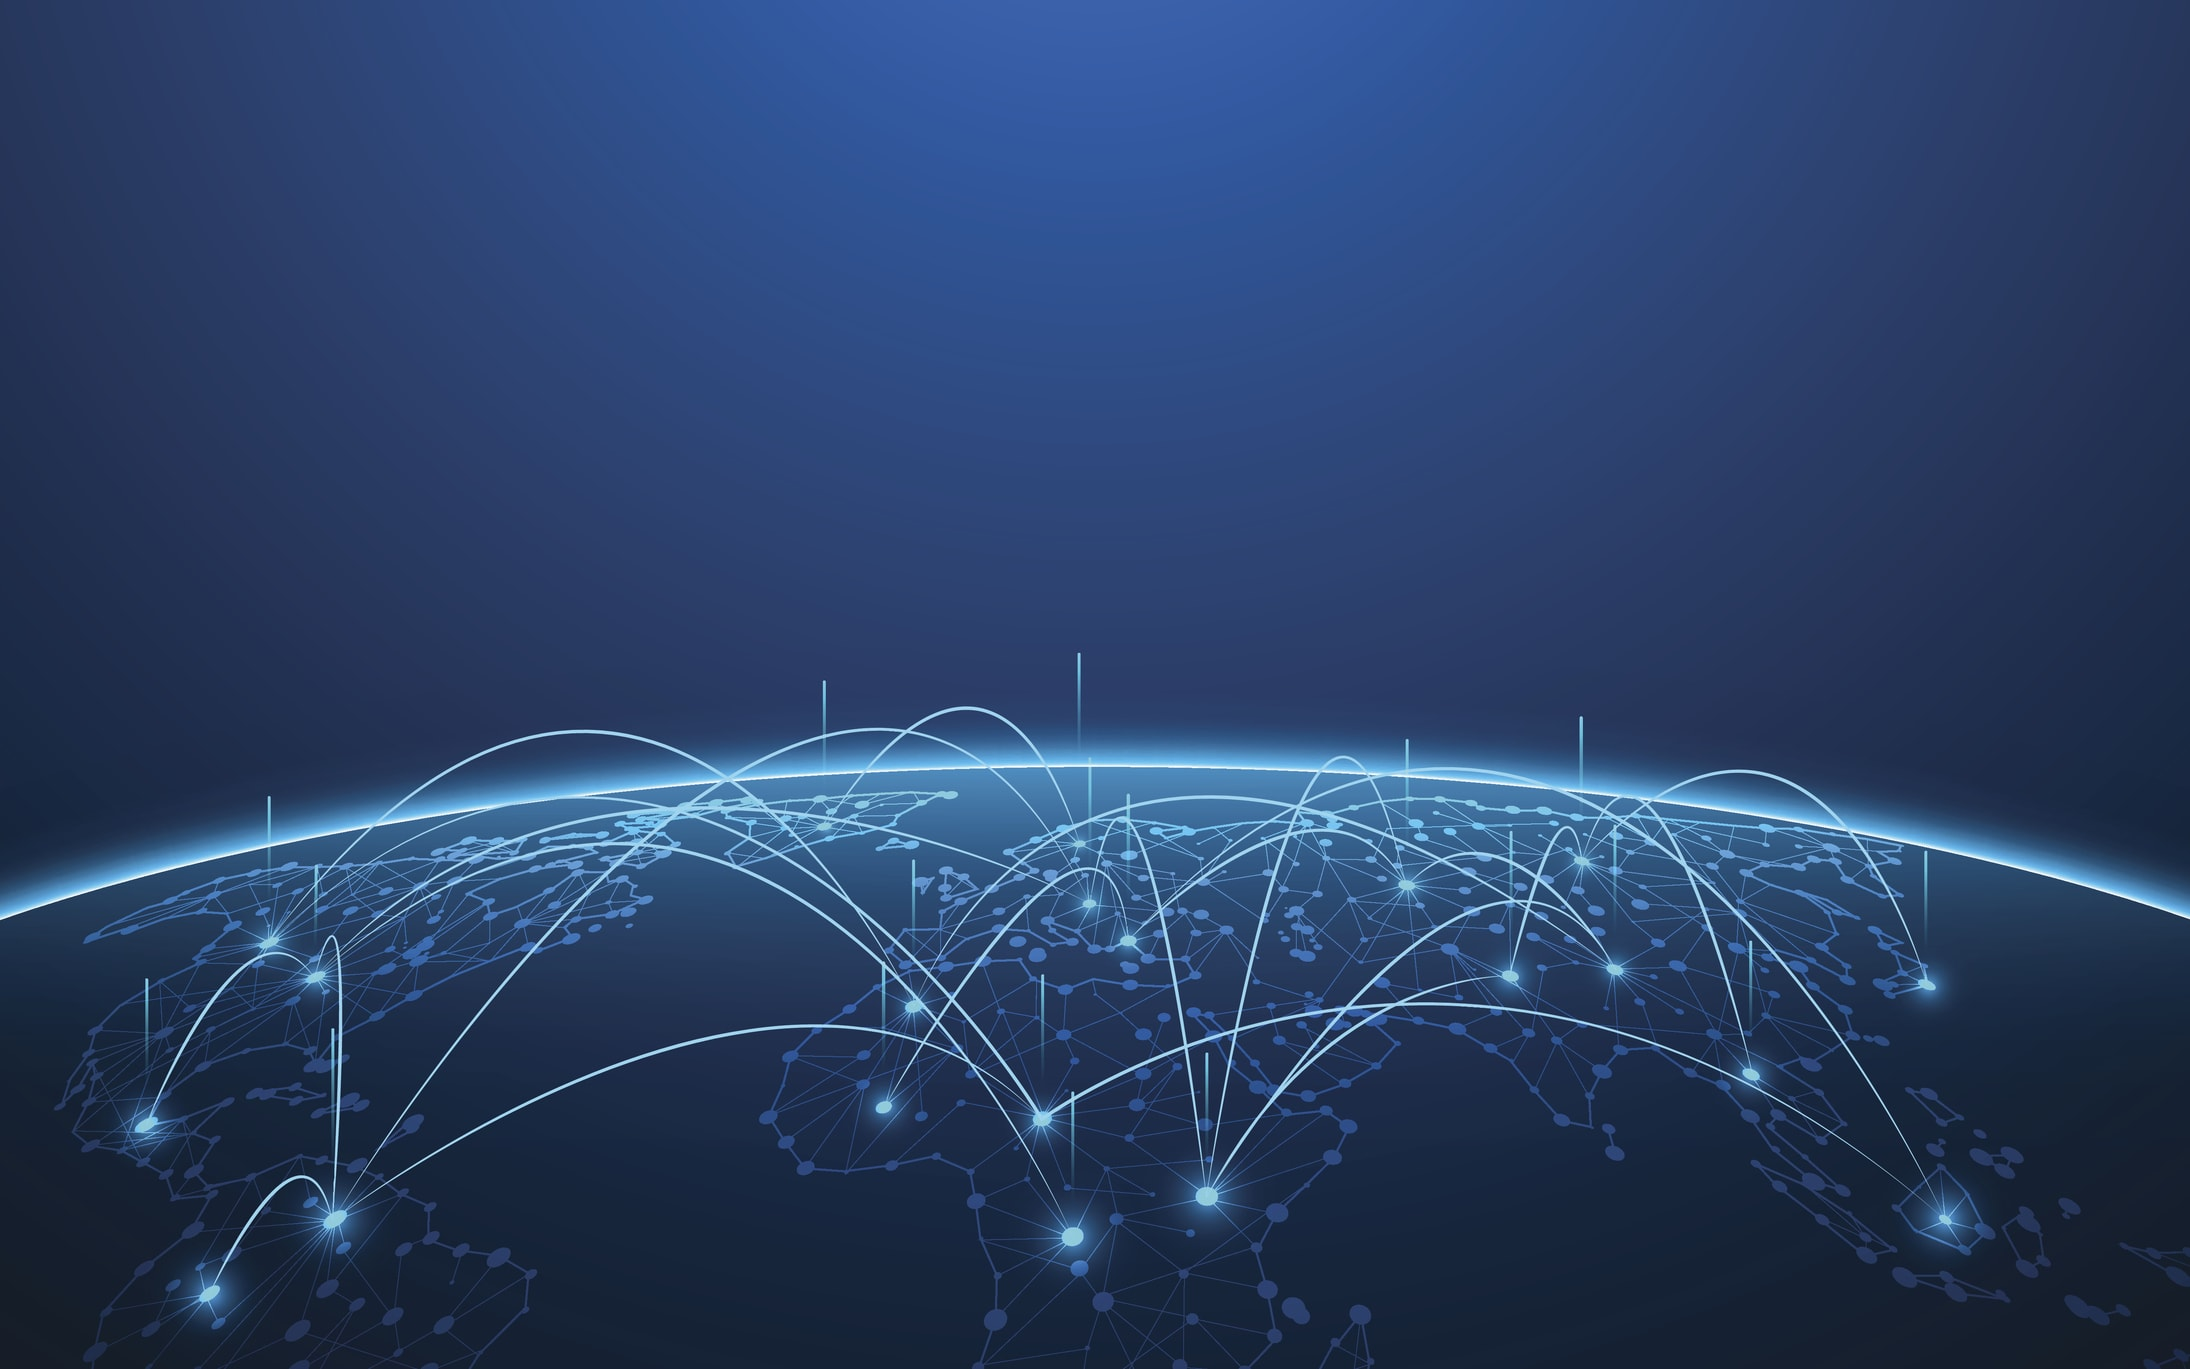 Which CDN Network Does Your OVP Use - global network POP